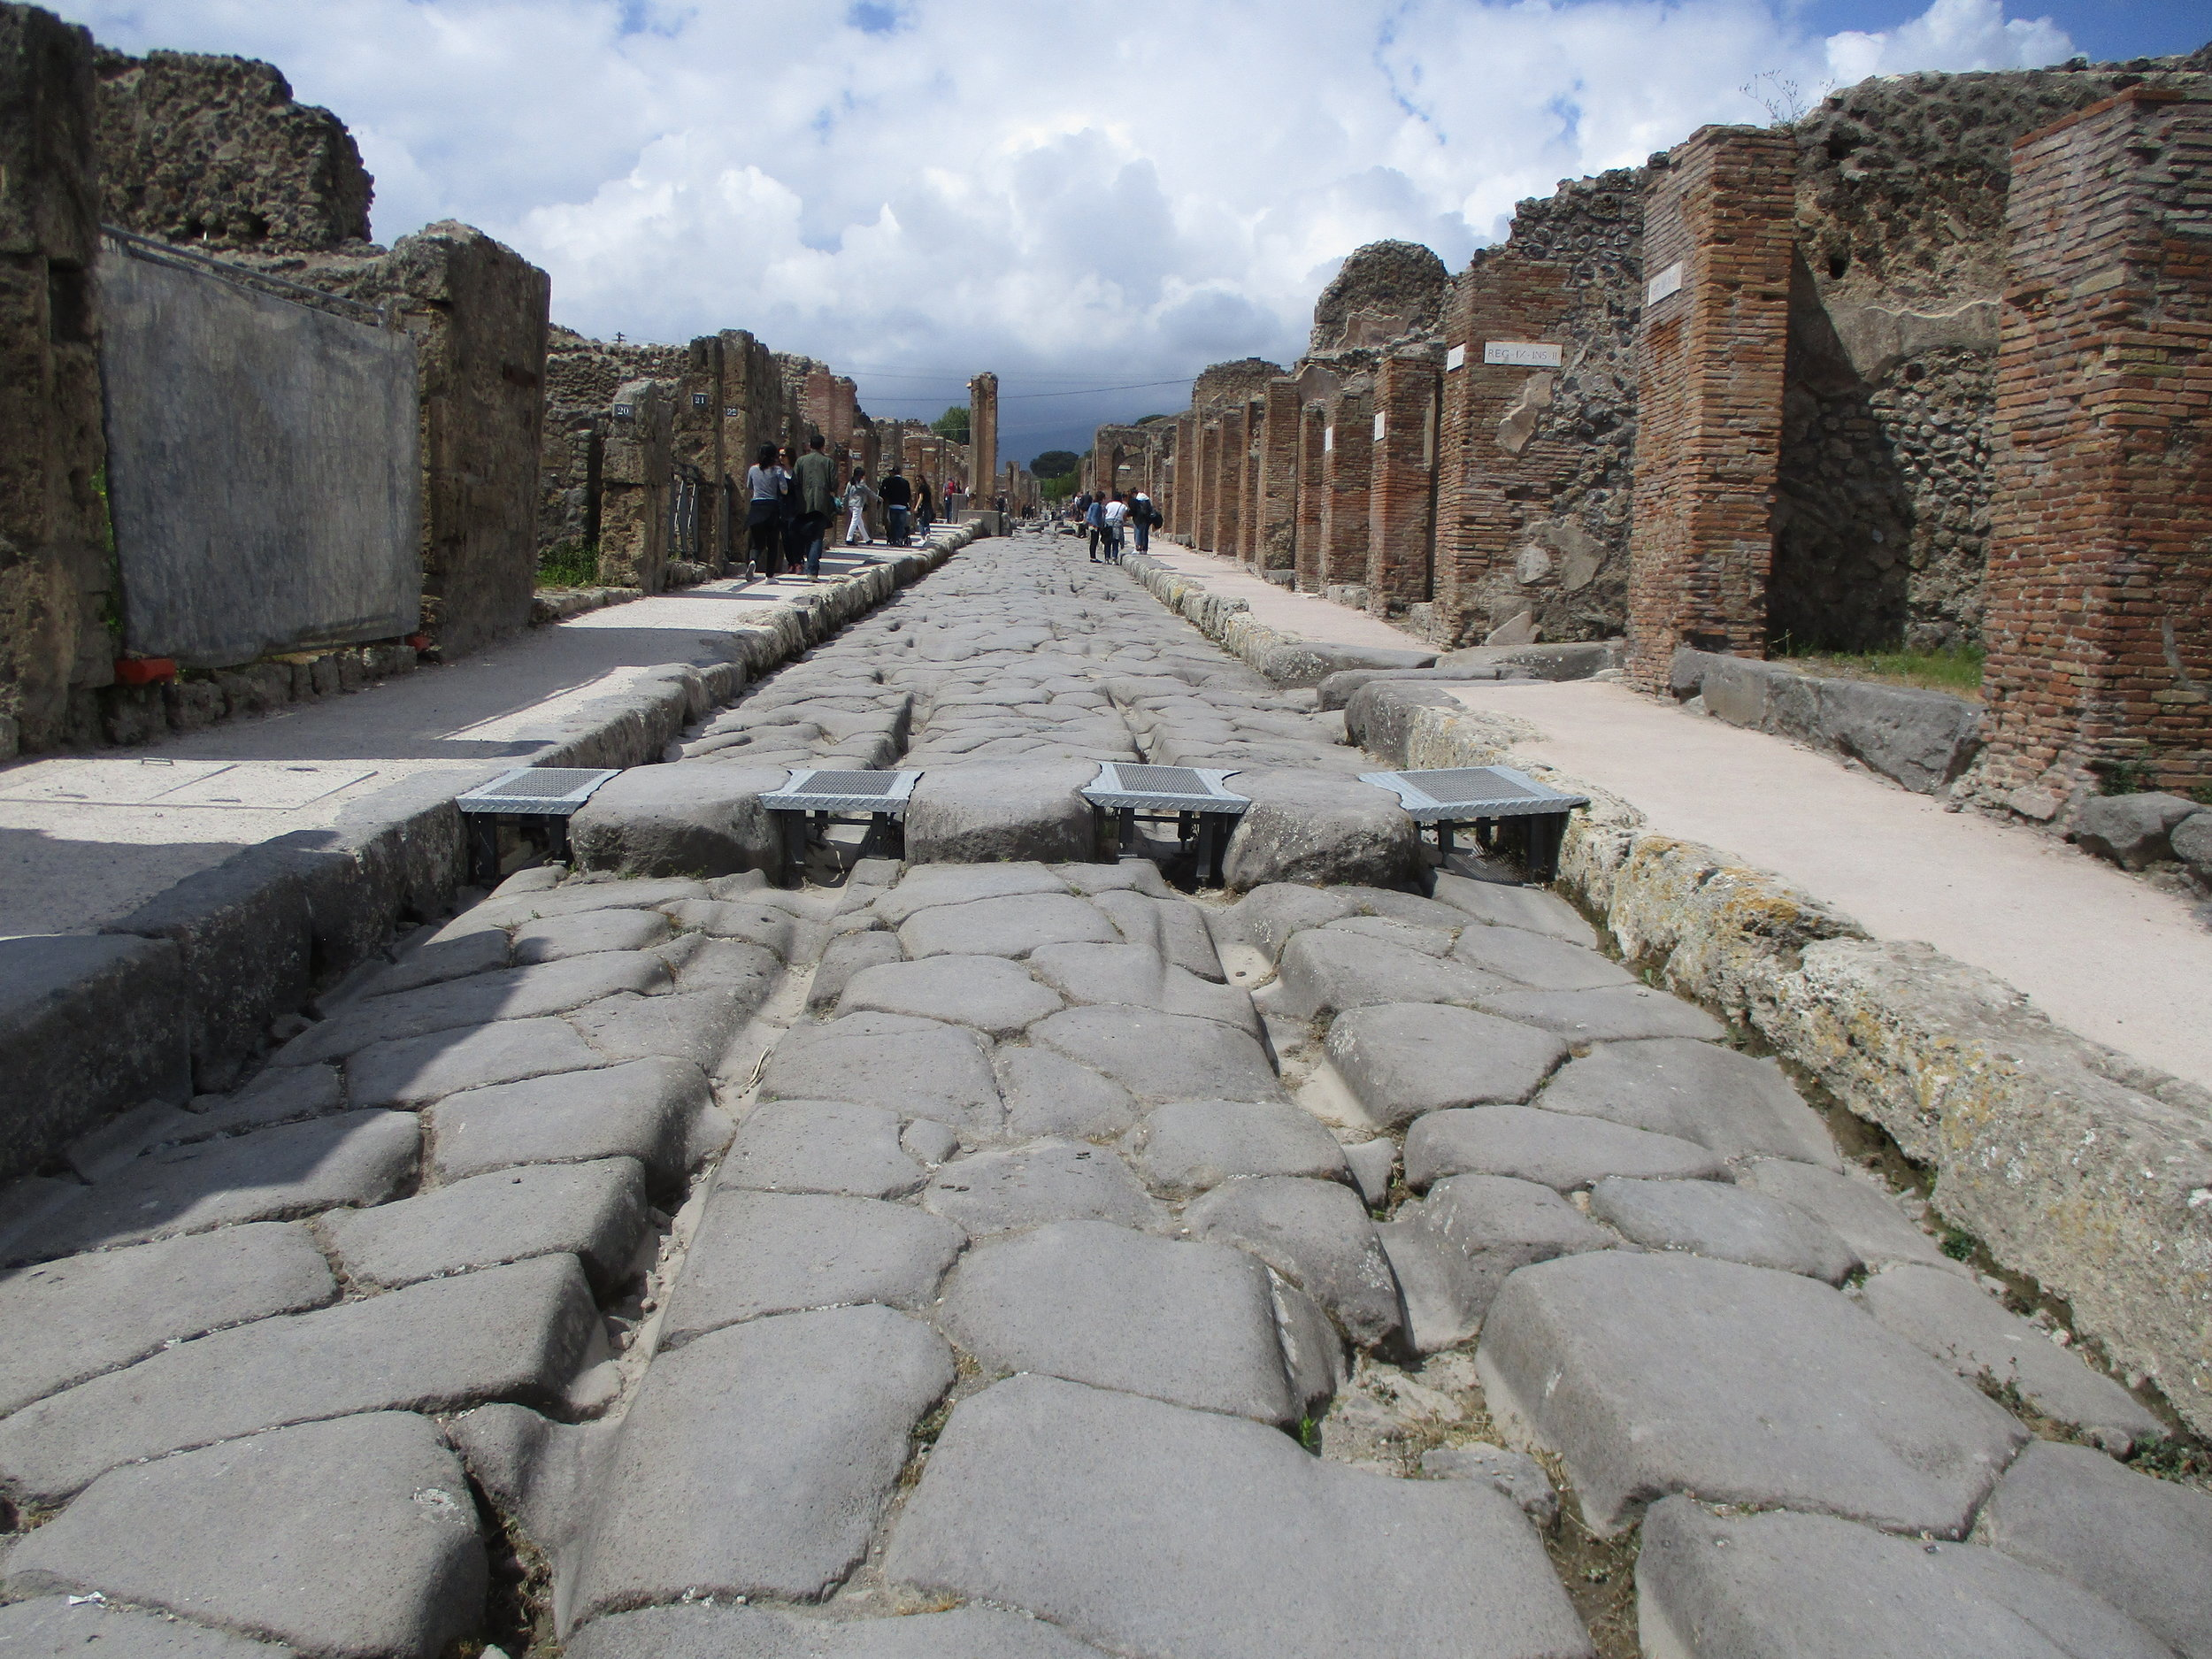 The streets of Pompeii. See the wagon tracks and the stone blocks used for crossing the road to keep your feet (and toga) dry. All amazingly preserved!